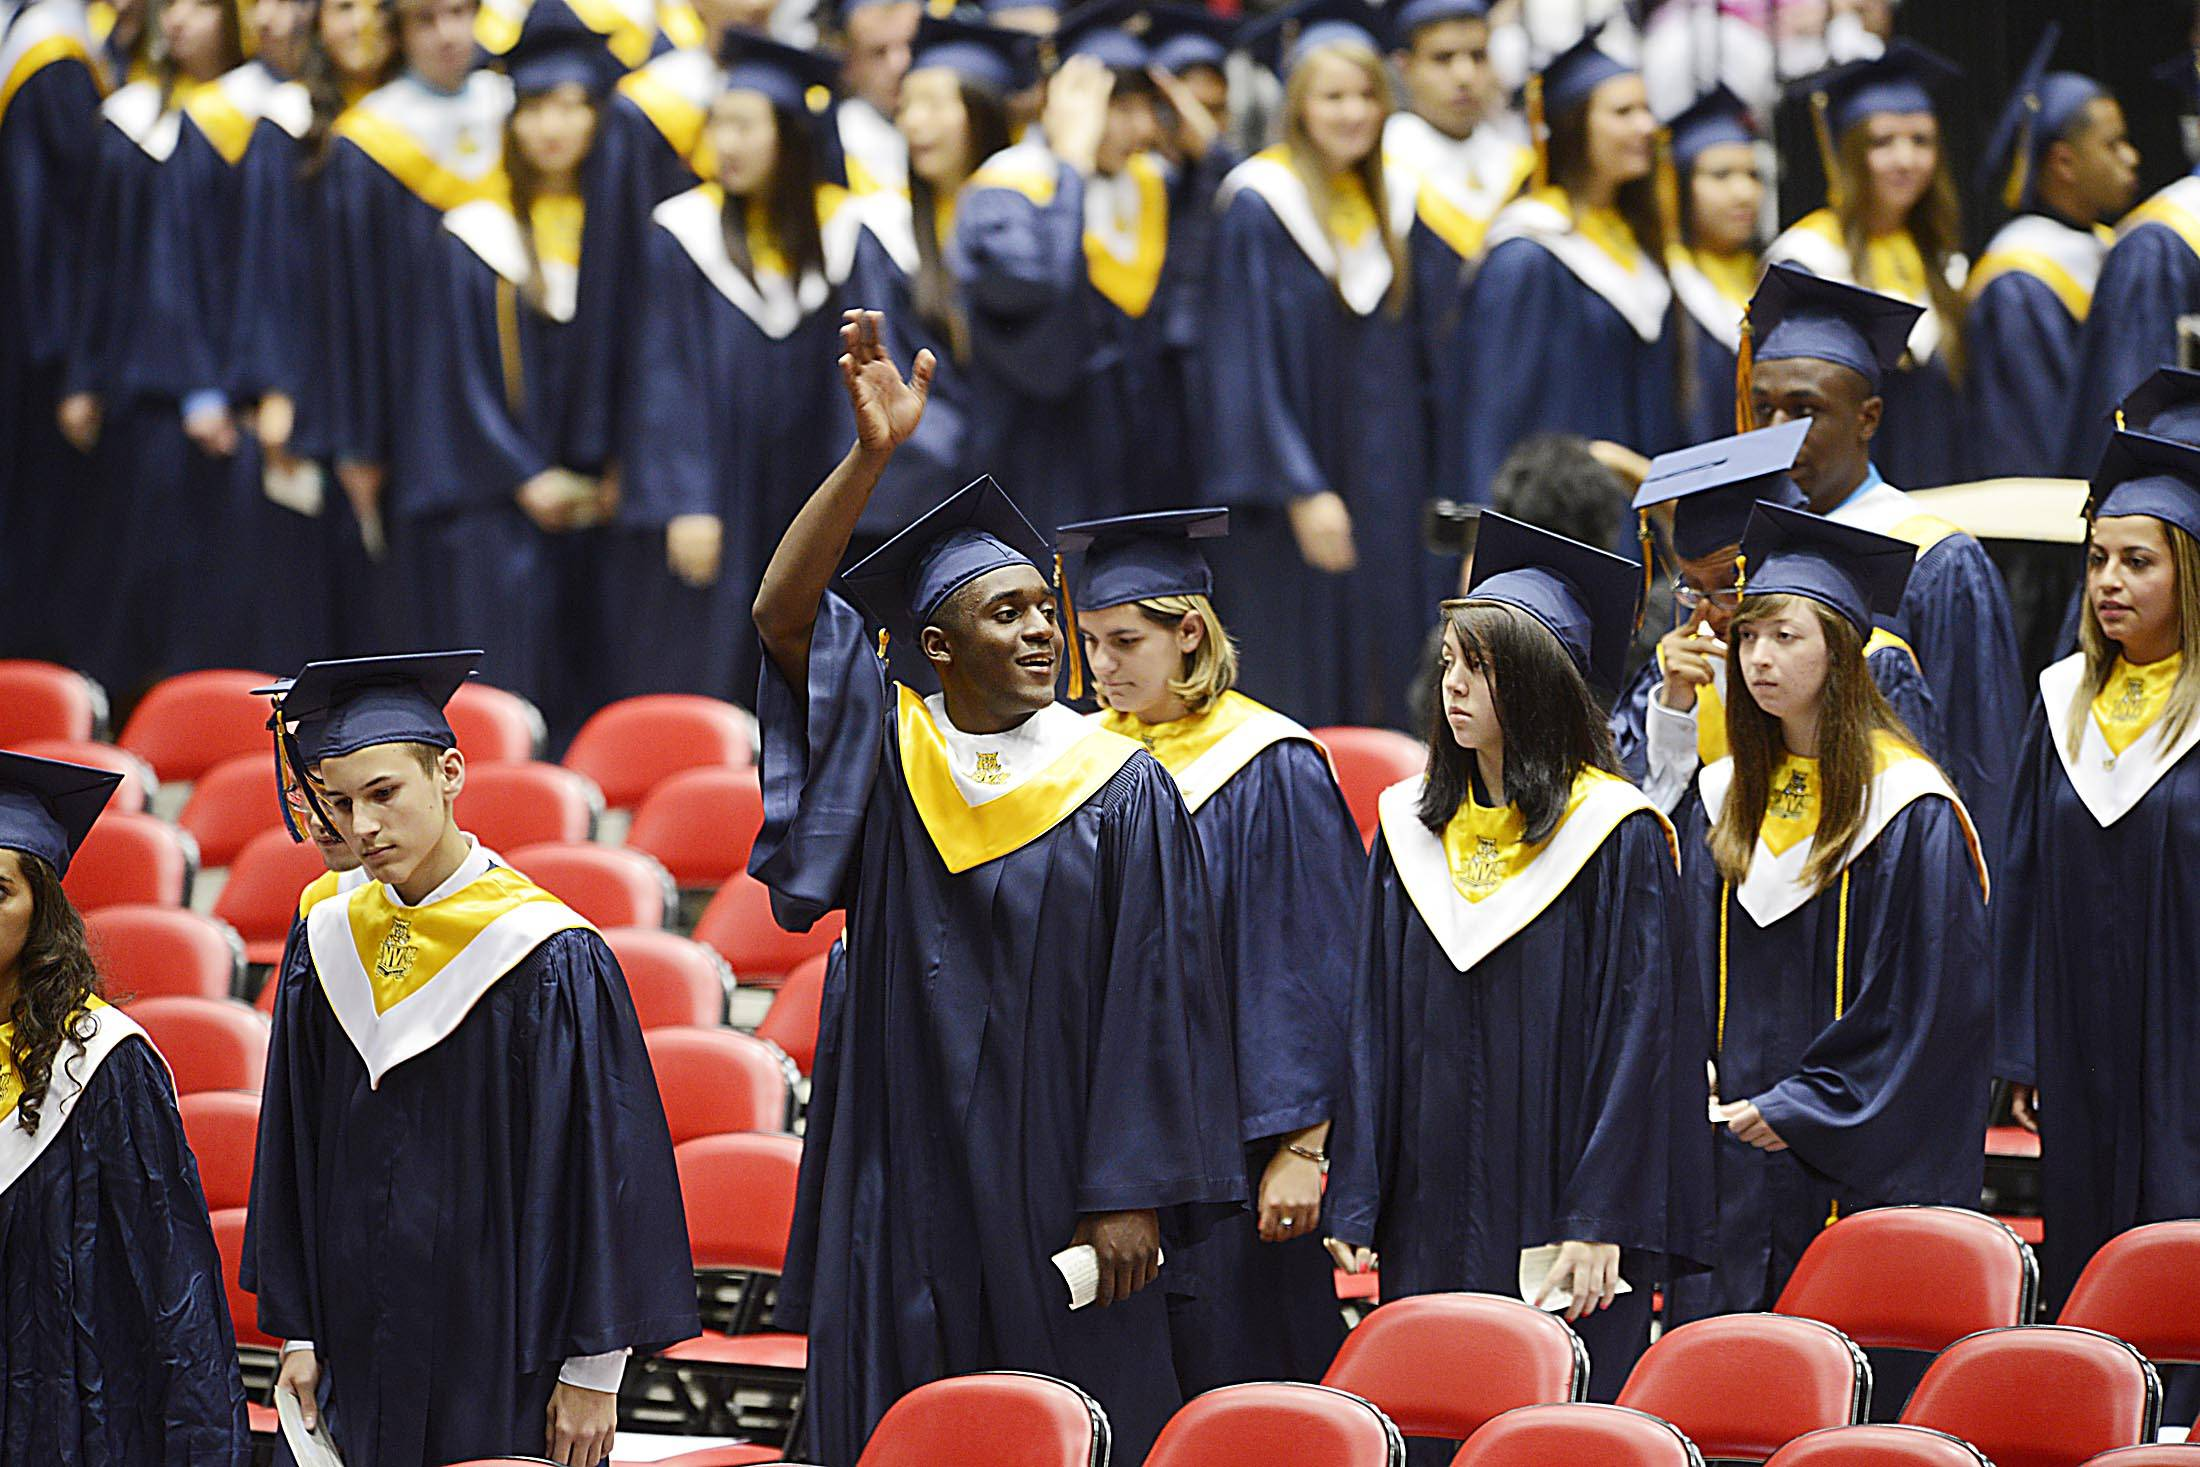 Graduate Willie Anderson III waves at family as he enters the arena at the Neuqua Valley High School 2014 commencement exercises at Northern Illinois University Sunday night.